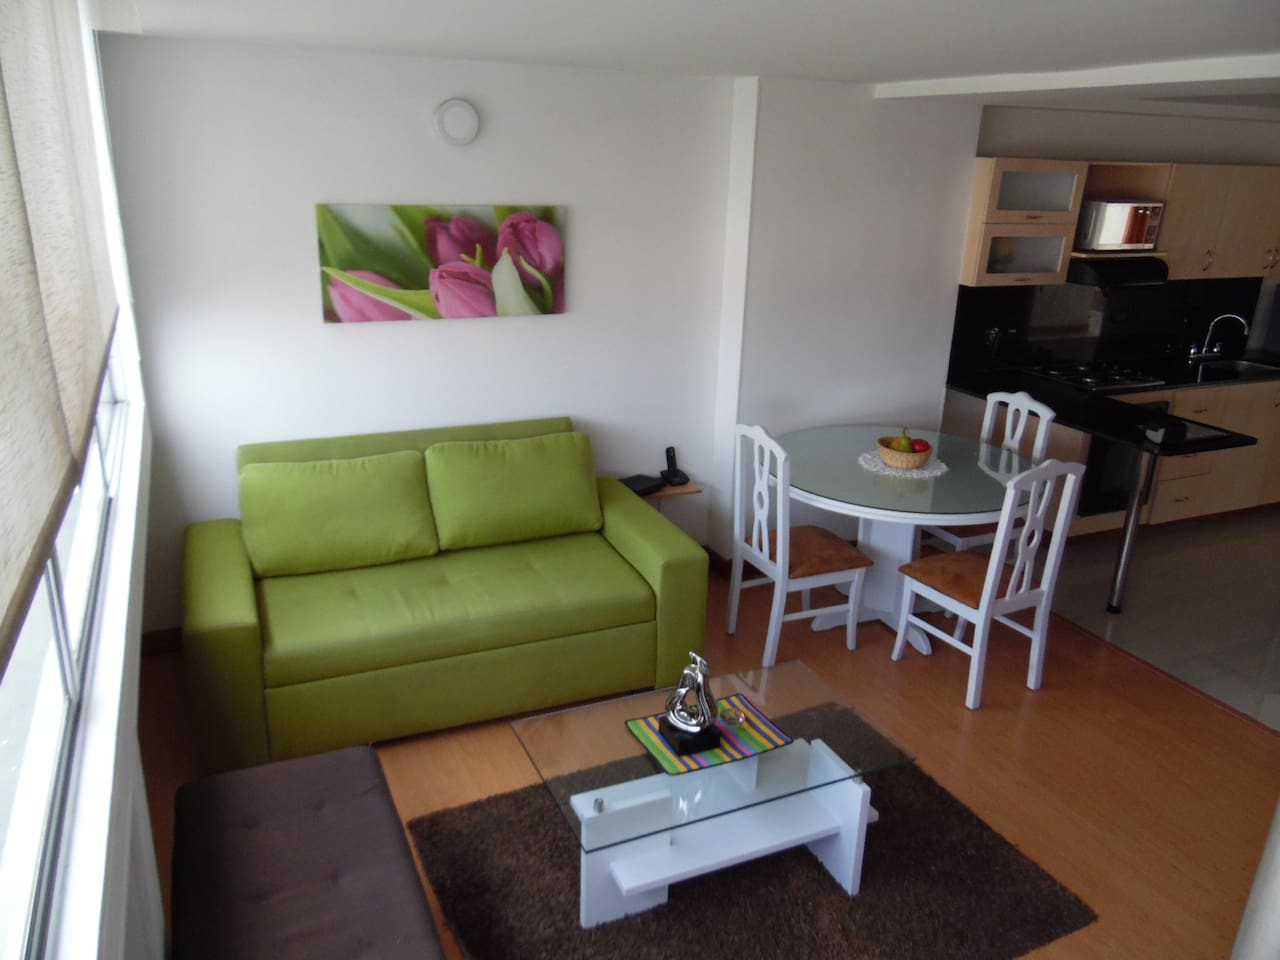 Sala con sofá cama/Living room with a couch